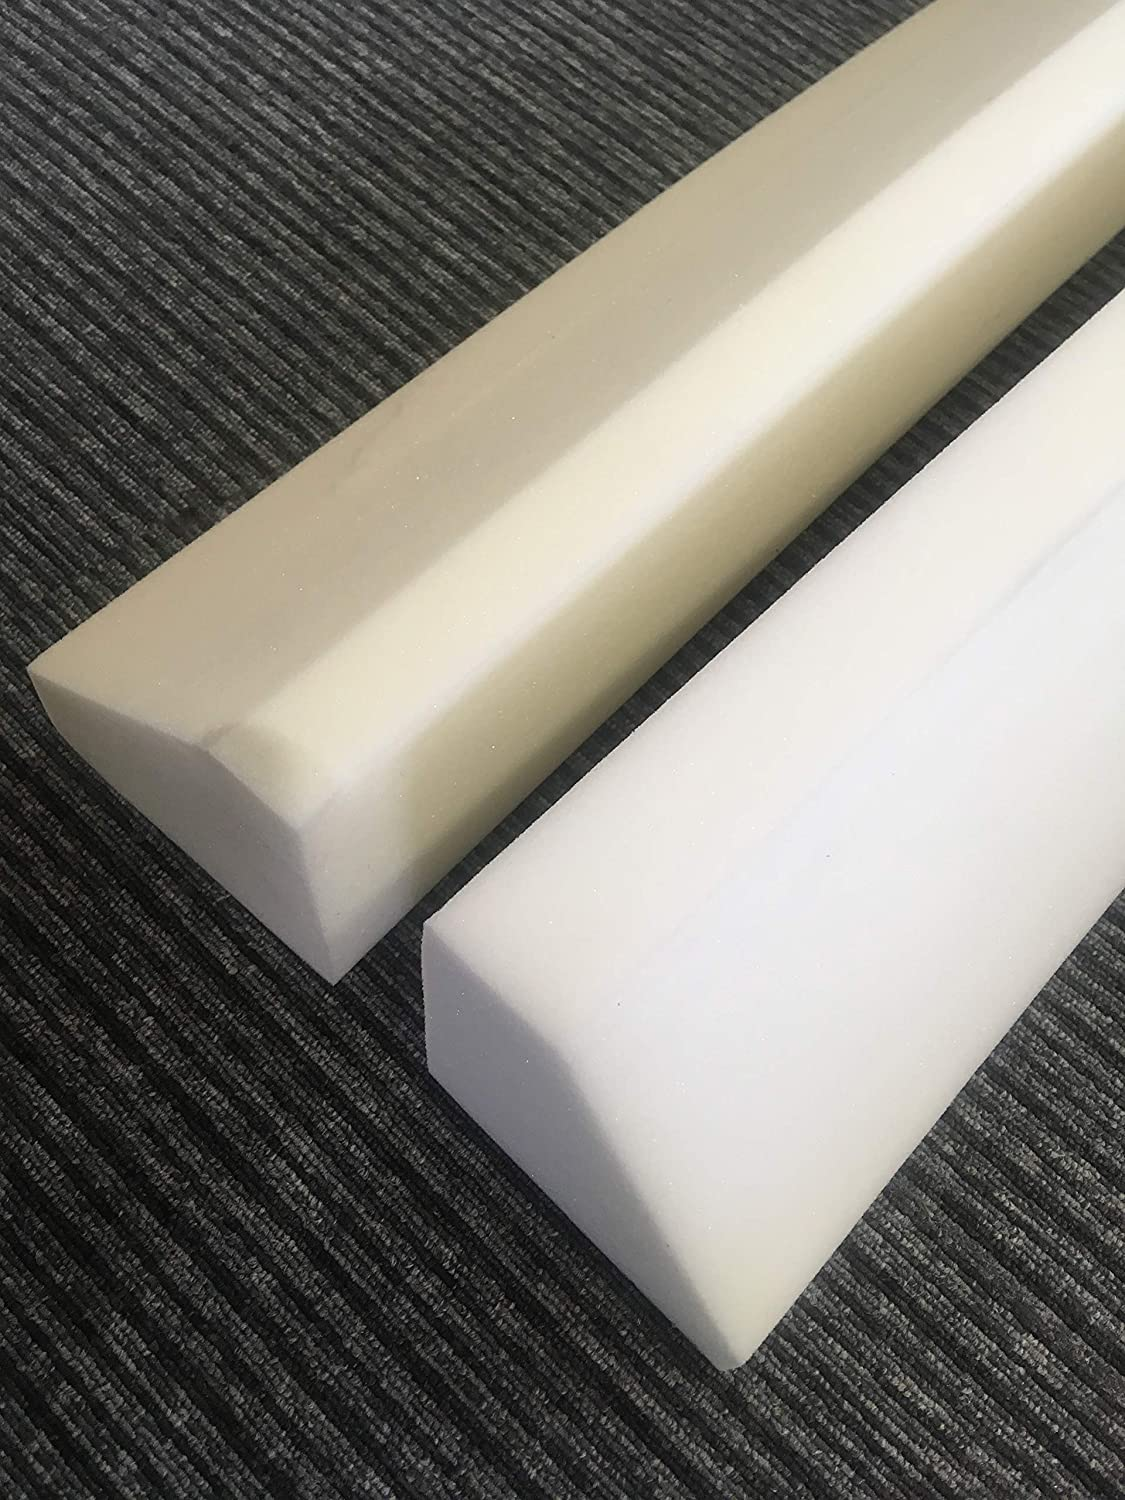 Childrens Foam Cot Safety Bumper Guard 140cm Cotbed Size, 1 Pack Ready Steady Bed